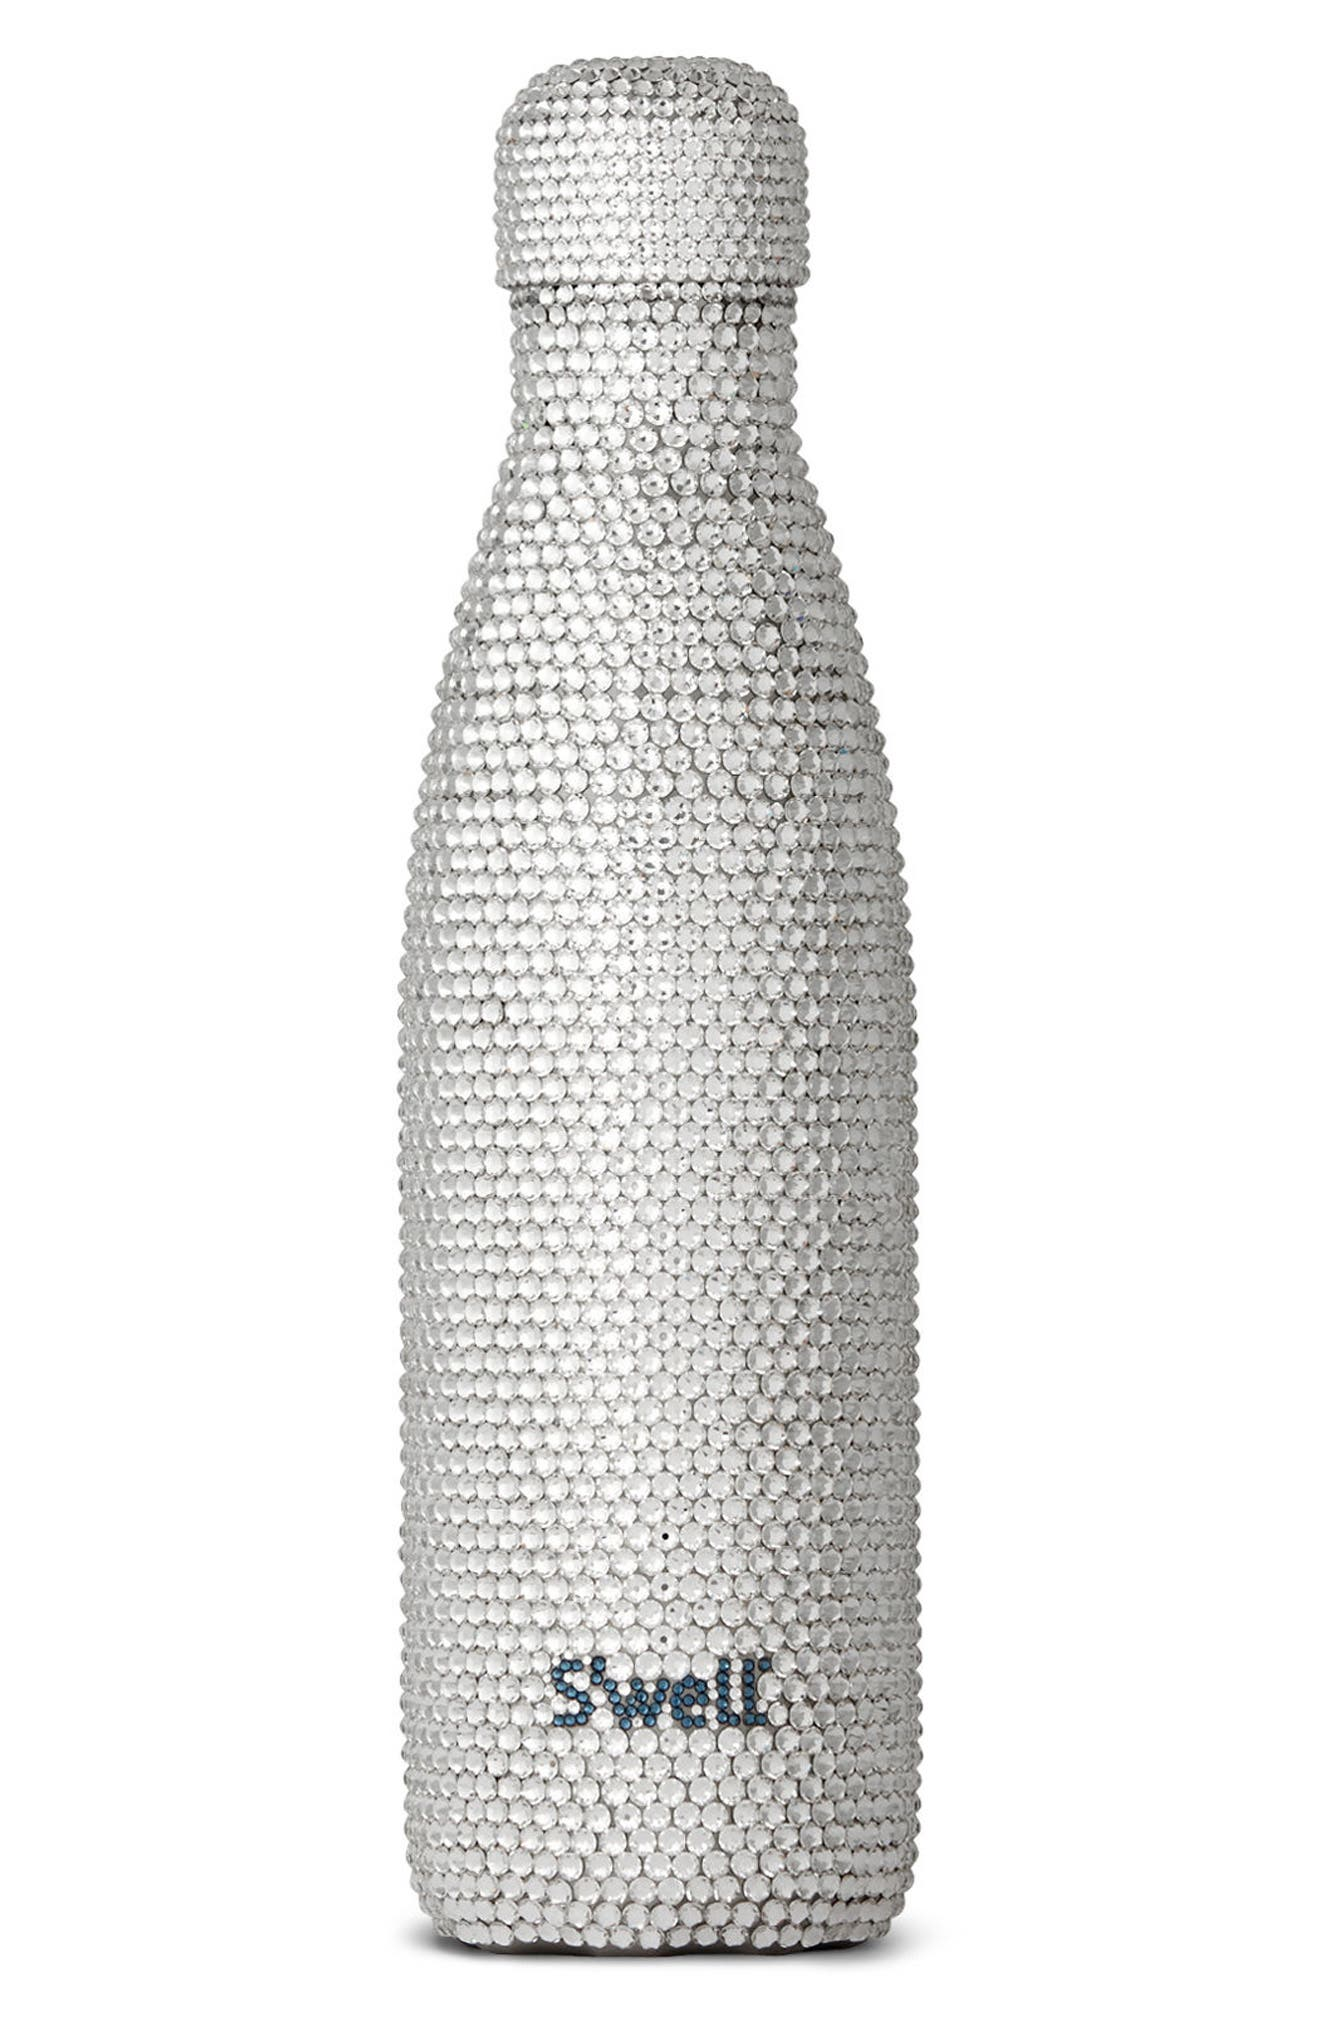 Main Image - S'well Alina Swarovski Crystal Insulated Stainless Steel Water Bottle (Limited Edition)